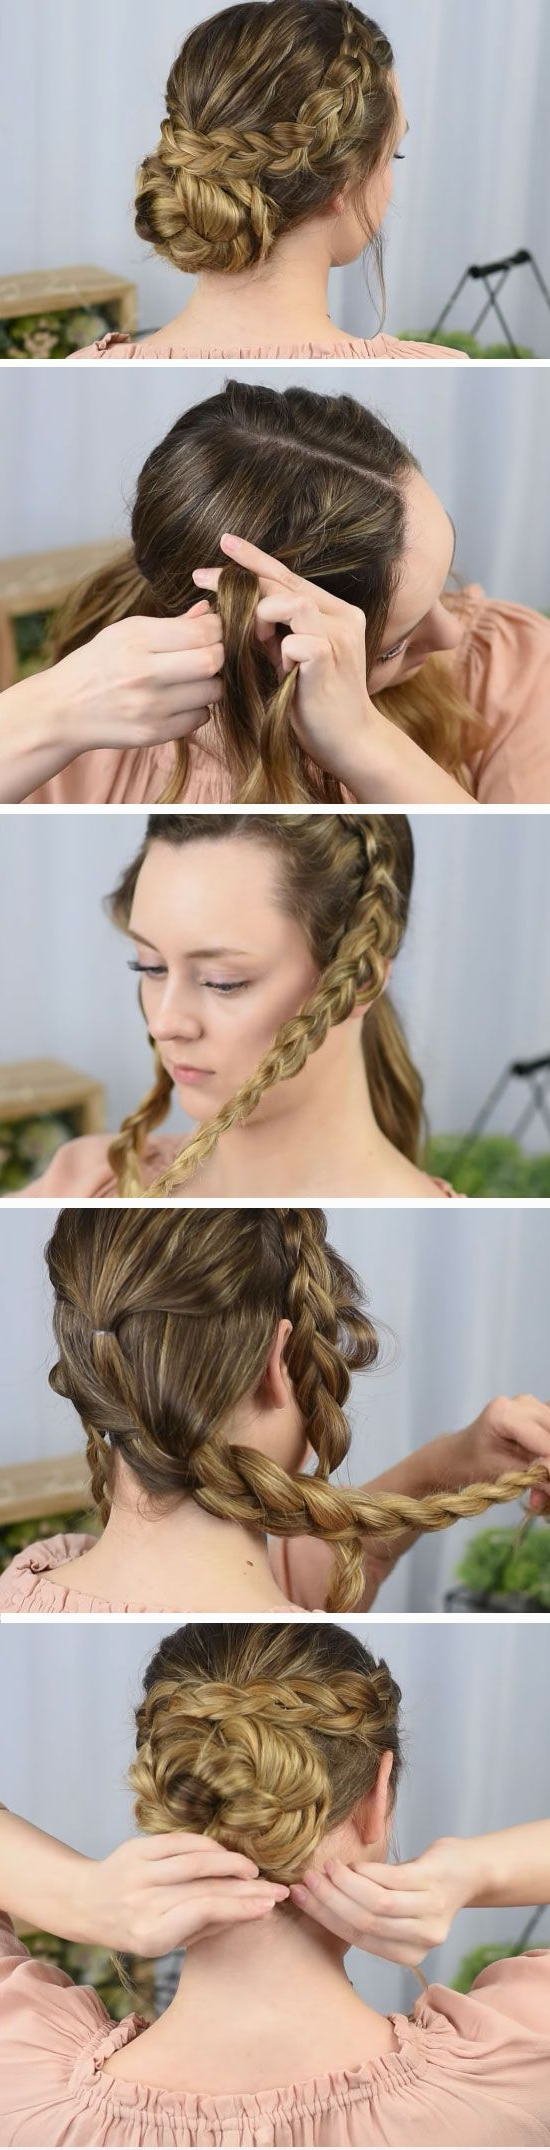 15 Easy Diy Prom Hairstyles For Medium Hair (Gallery 4 of 20)